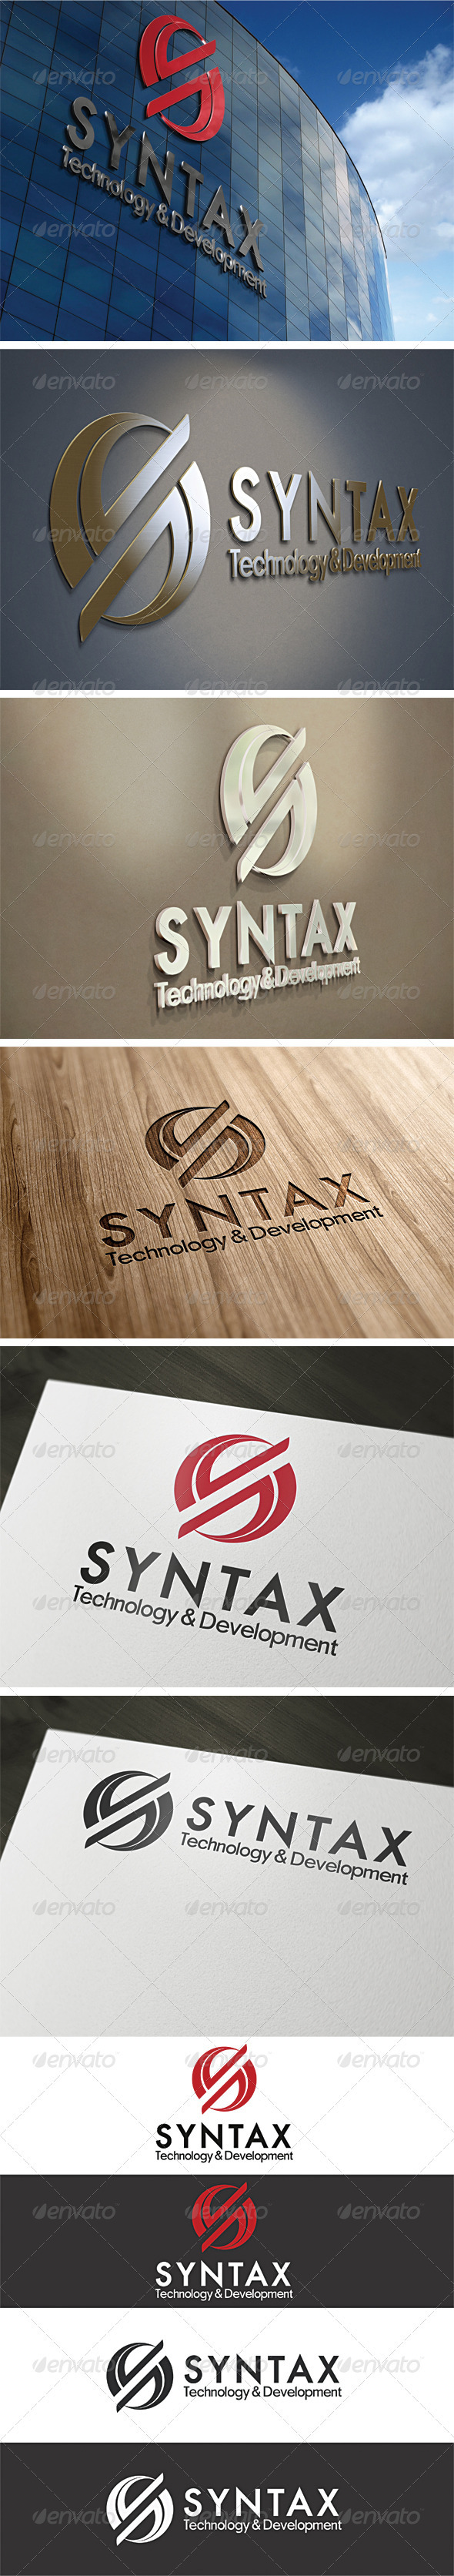 Syntax Logo Template - Vector Abstract